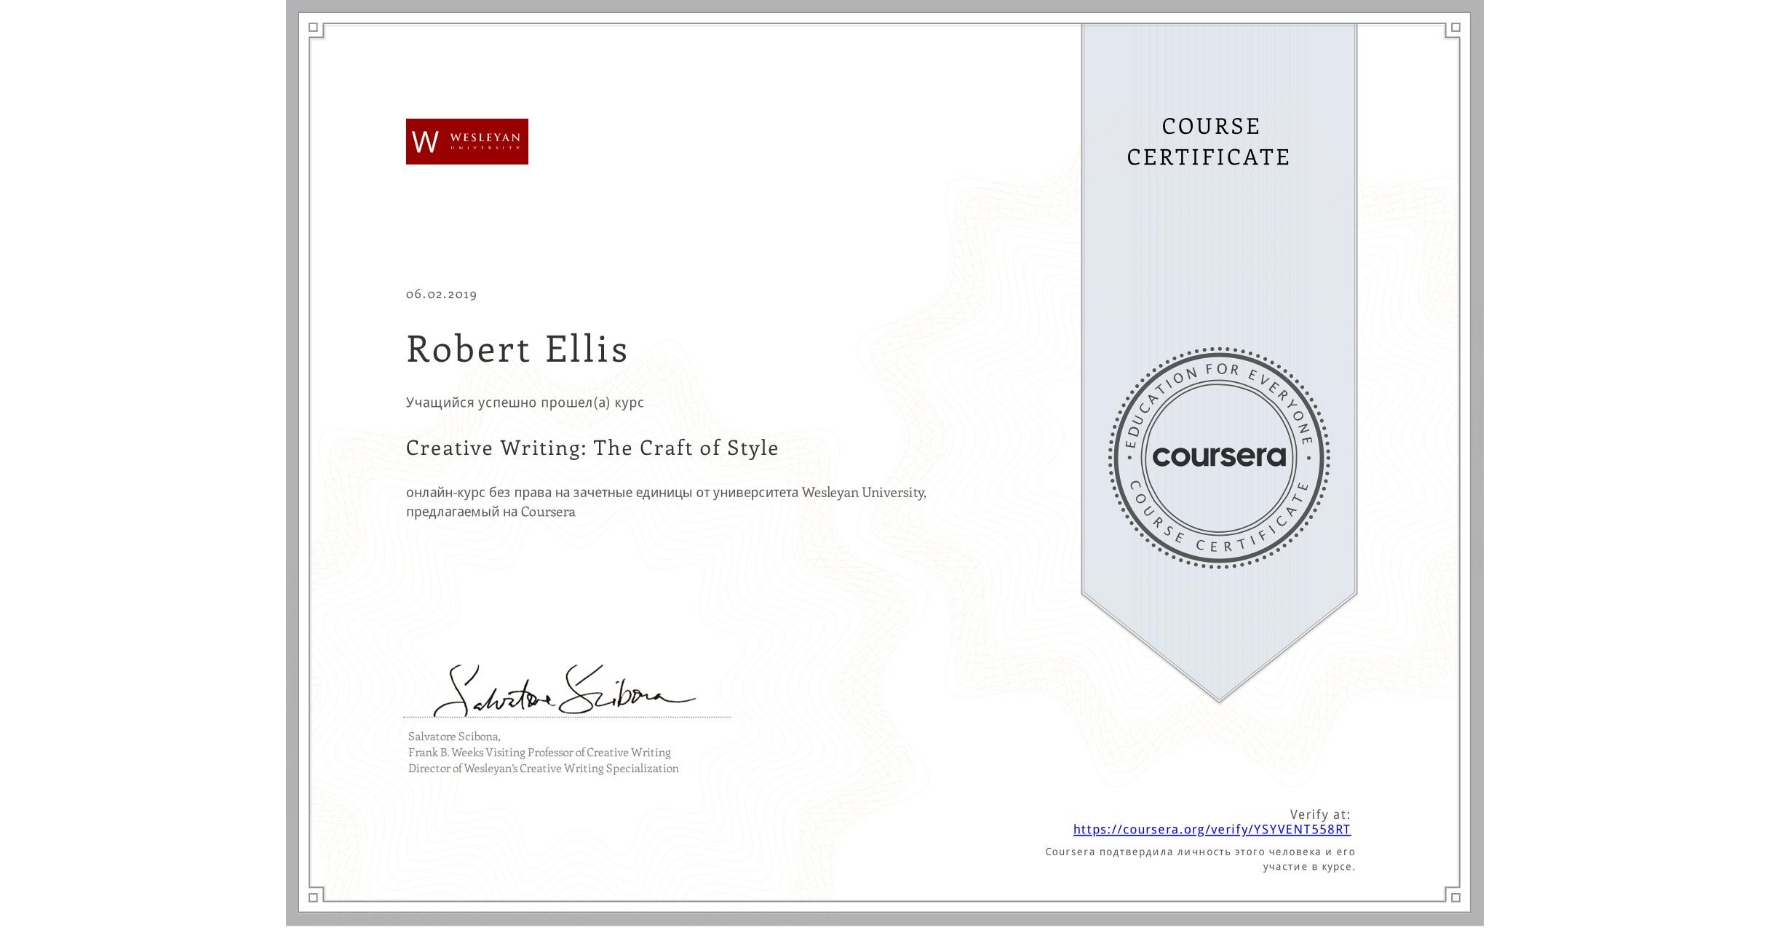 View certificate for Robert Ellis, Creative Writing: The Craft of Style, an online non-credit course authorized by Wesleyan University and offered through Coursera